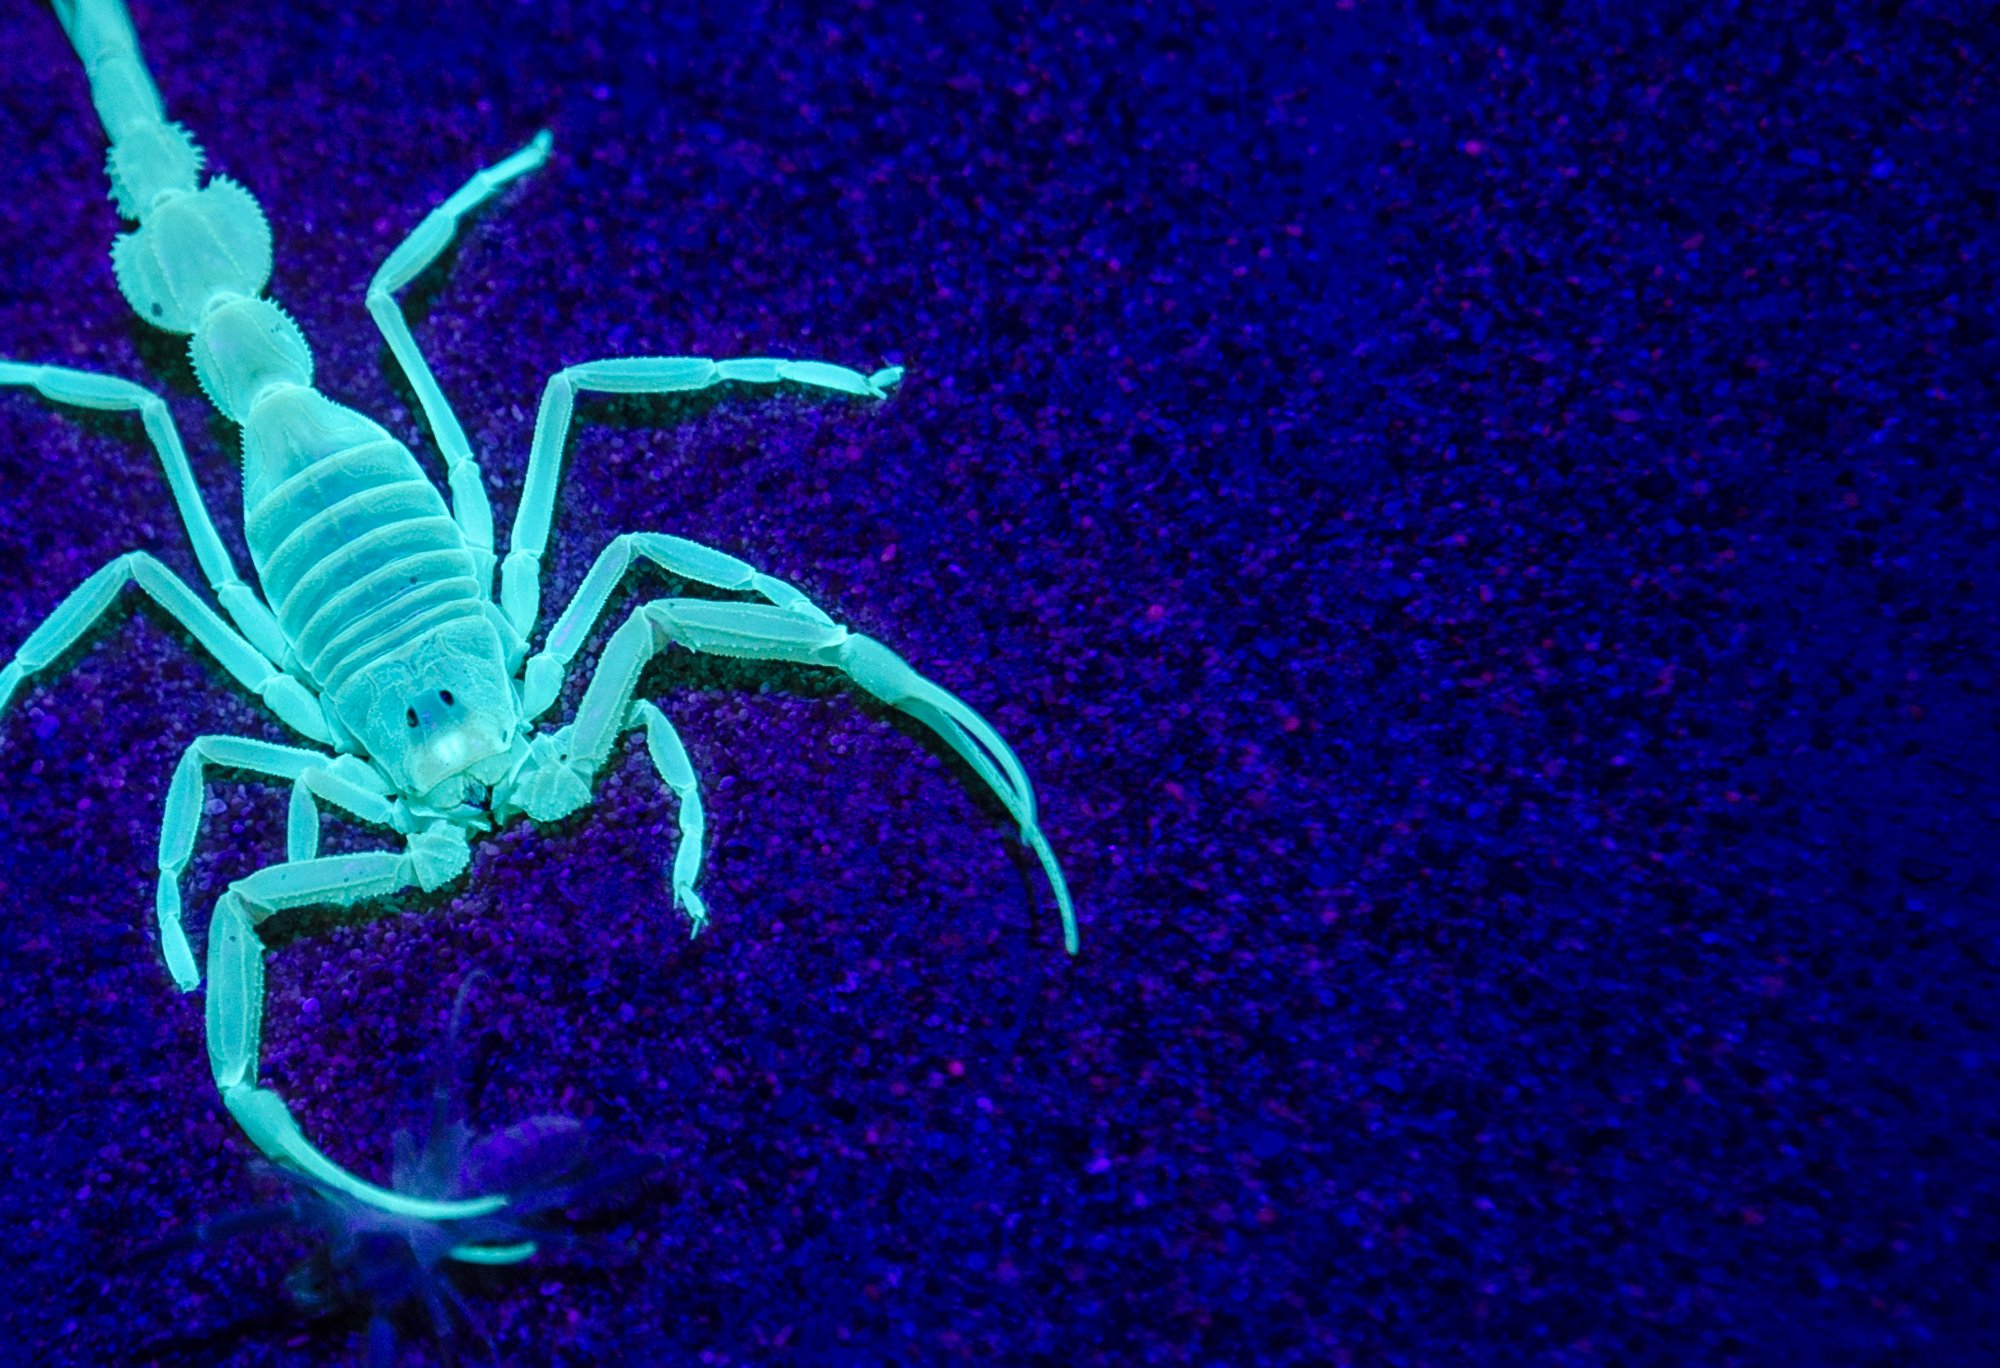 Scorpions Glow Beautifully Under UV Light